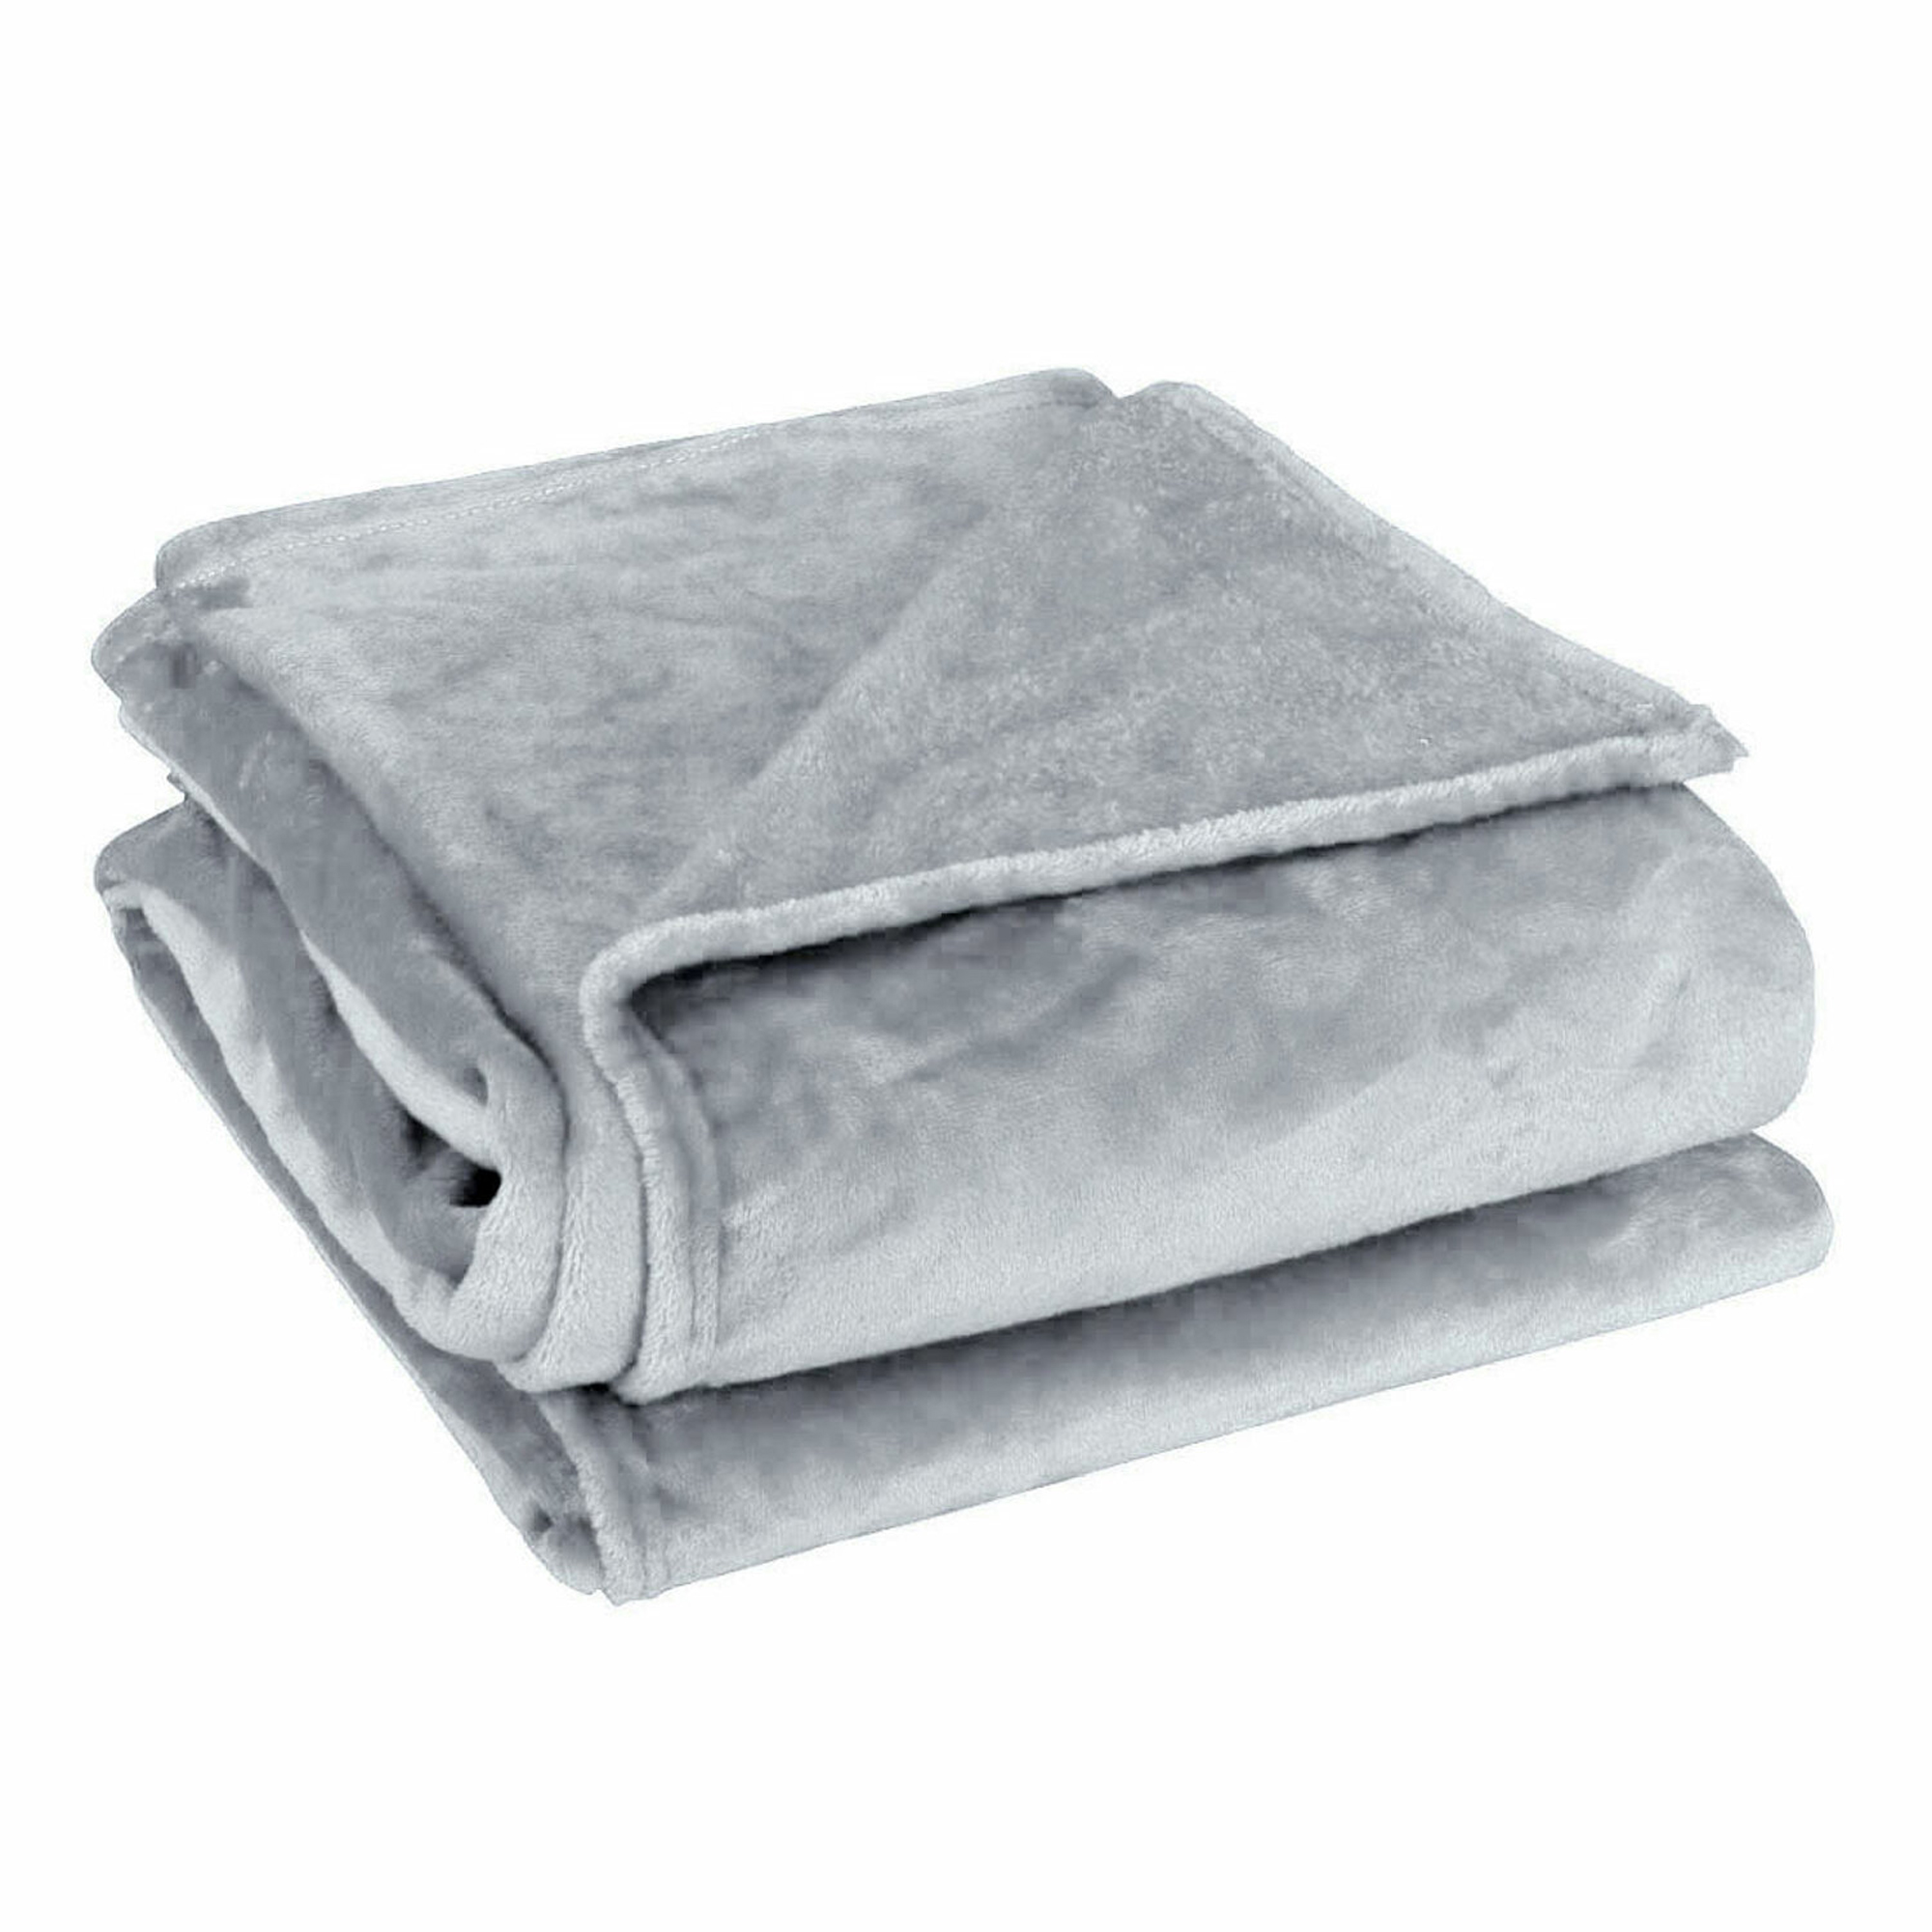 Full Size Home Bedroom Sofa Polyester plush Throws Blanket Warm Soft Light Gray 180 x 200cm